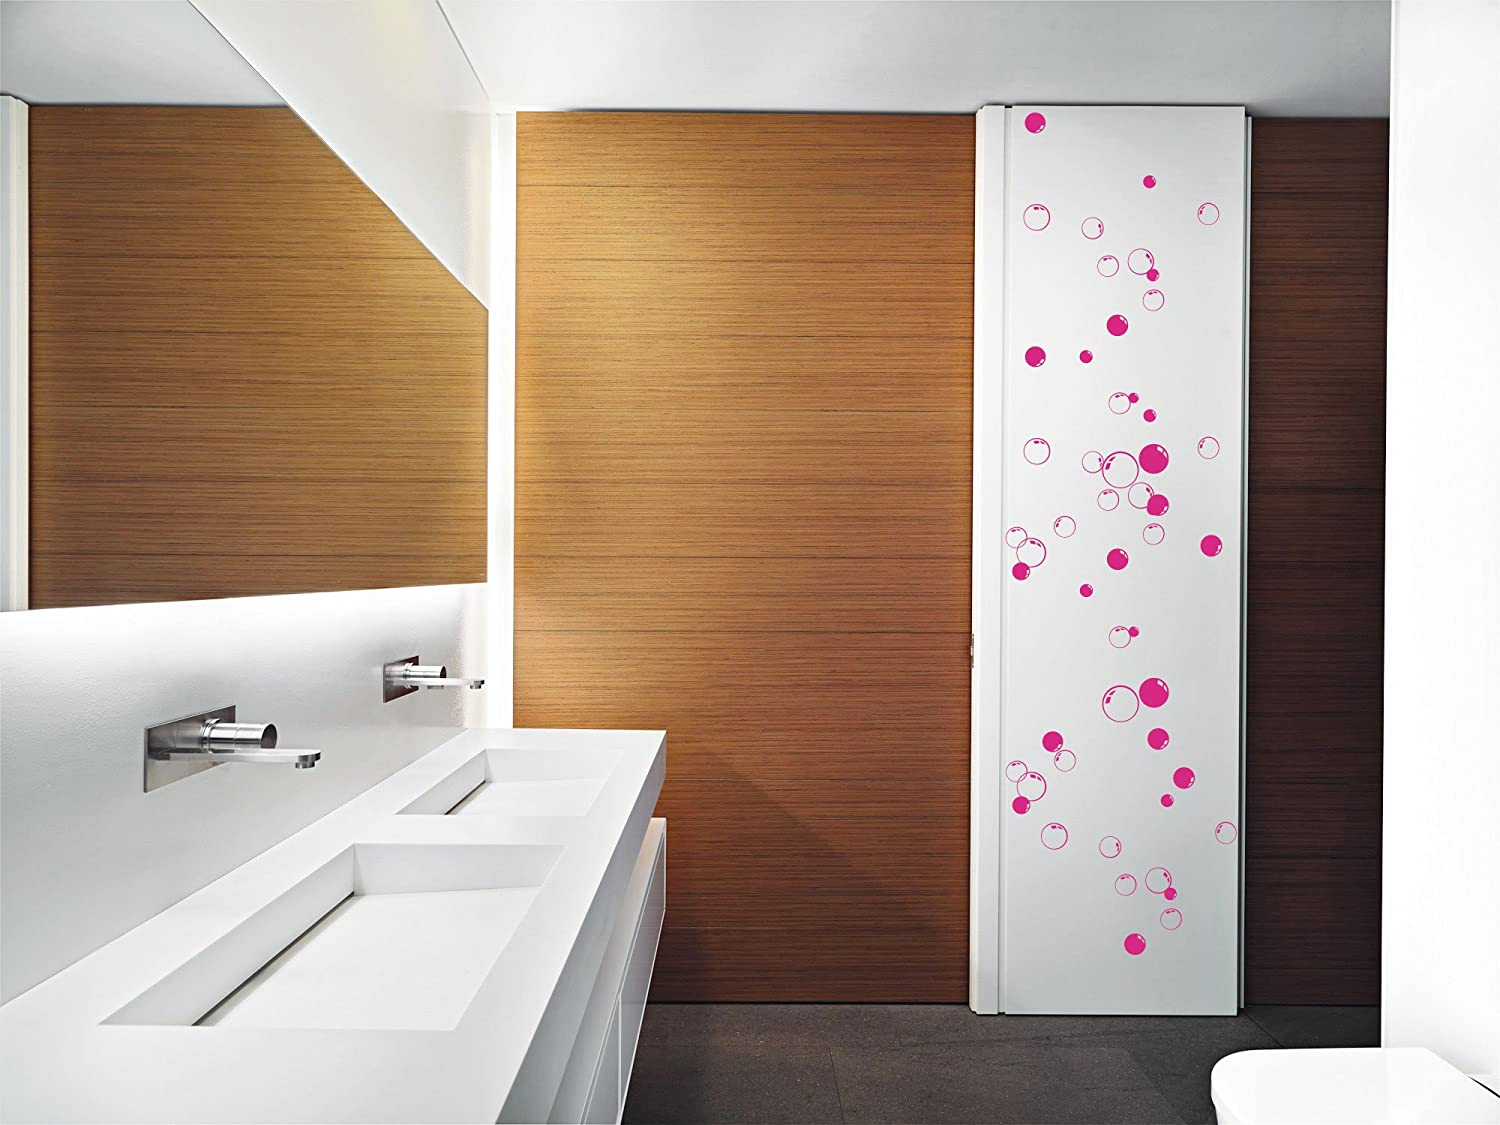 58 bubbles bathroom window shower tile wall stickers wall decals car decals amazoncouk kitchen u0026 home